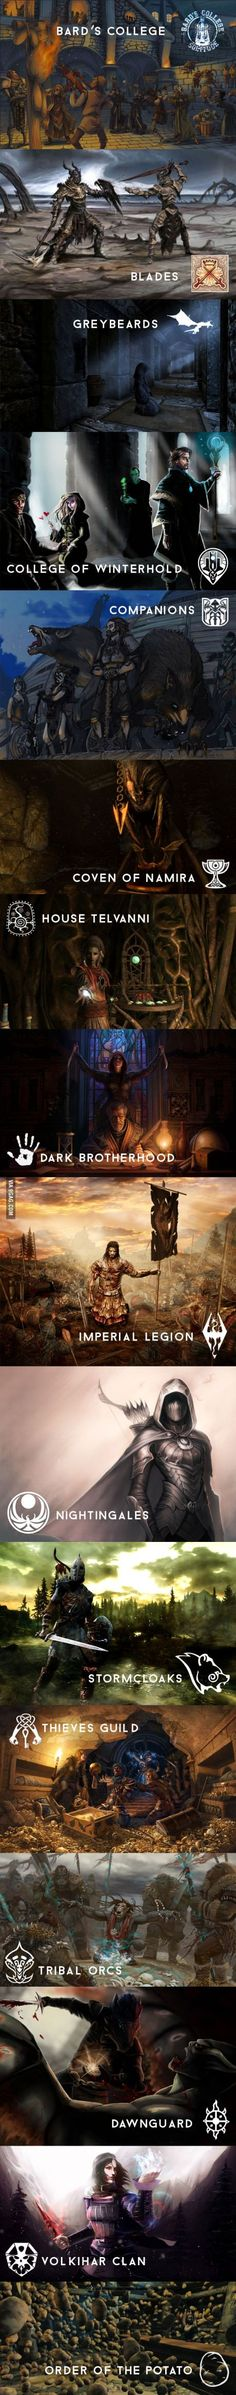 What's your favorite Skyrim faction? Mine is thieves guild an dark brotherhood